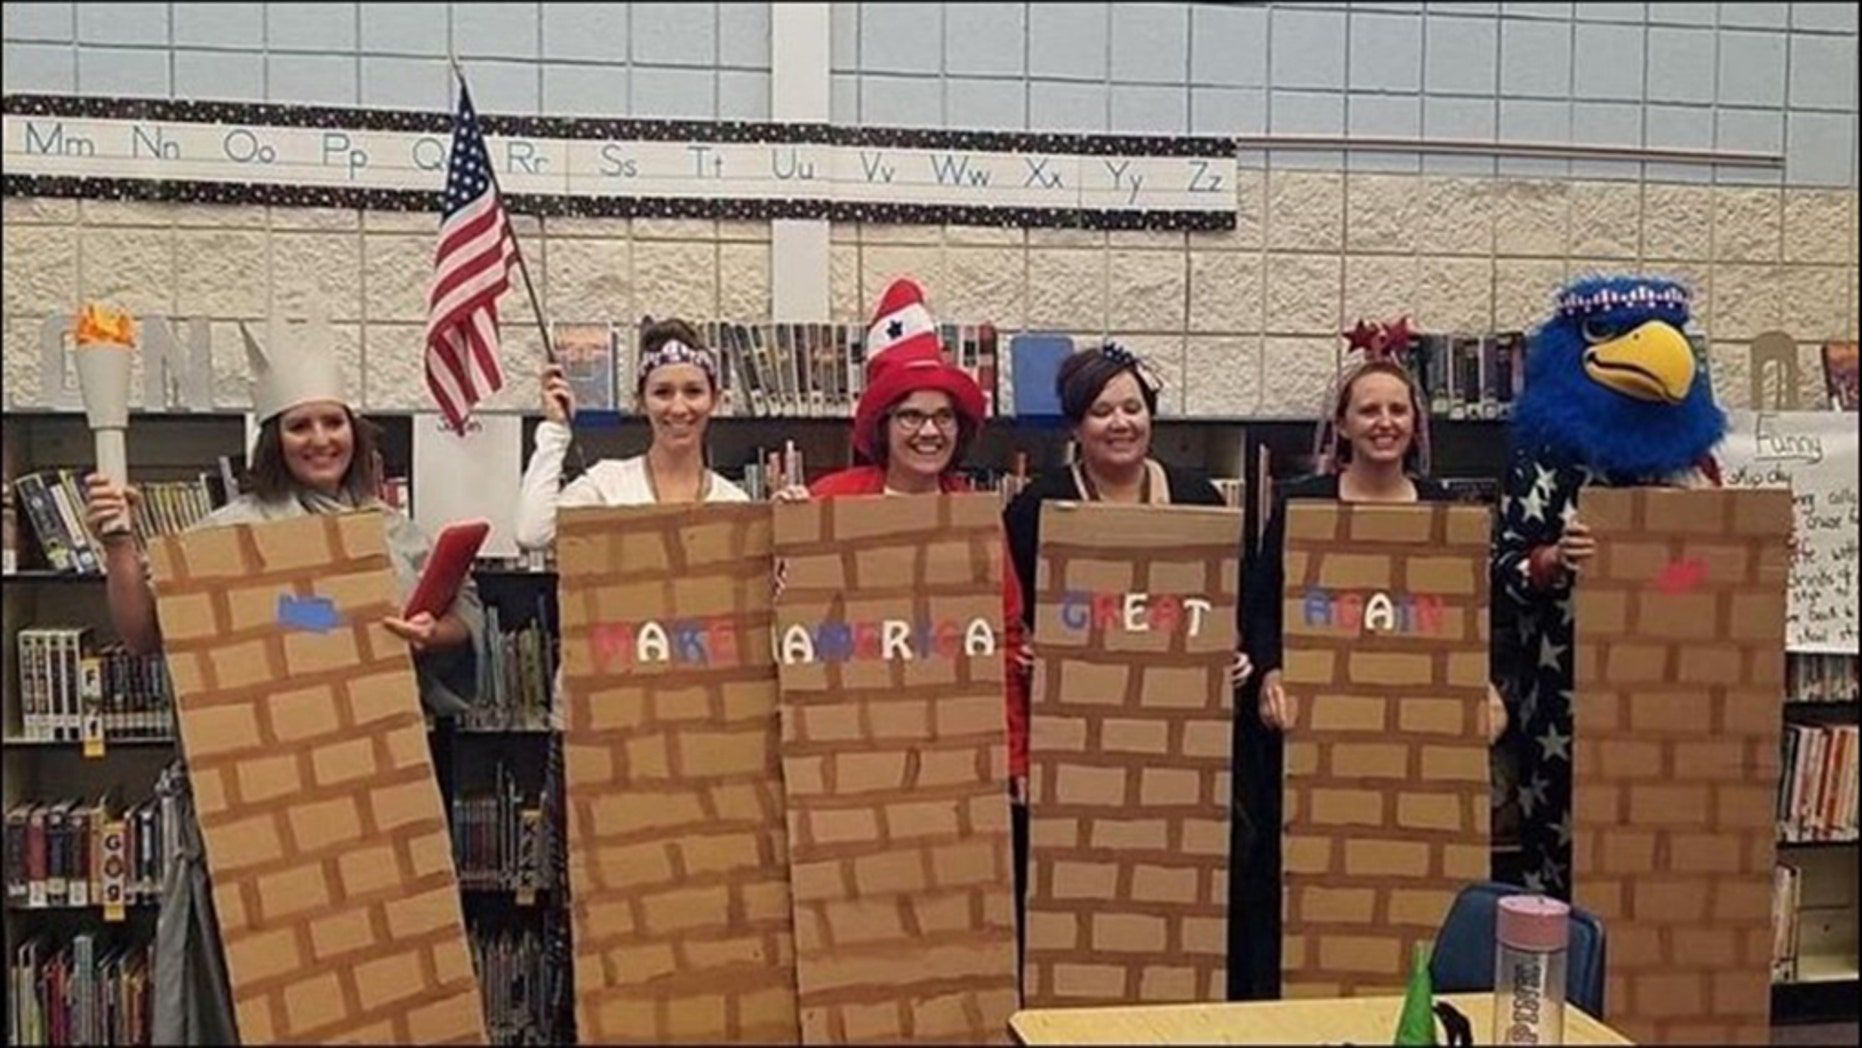 Teachers in hot water for Halloween costumes depicting Mexicans and border wall